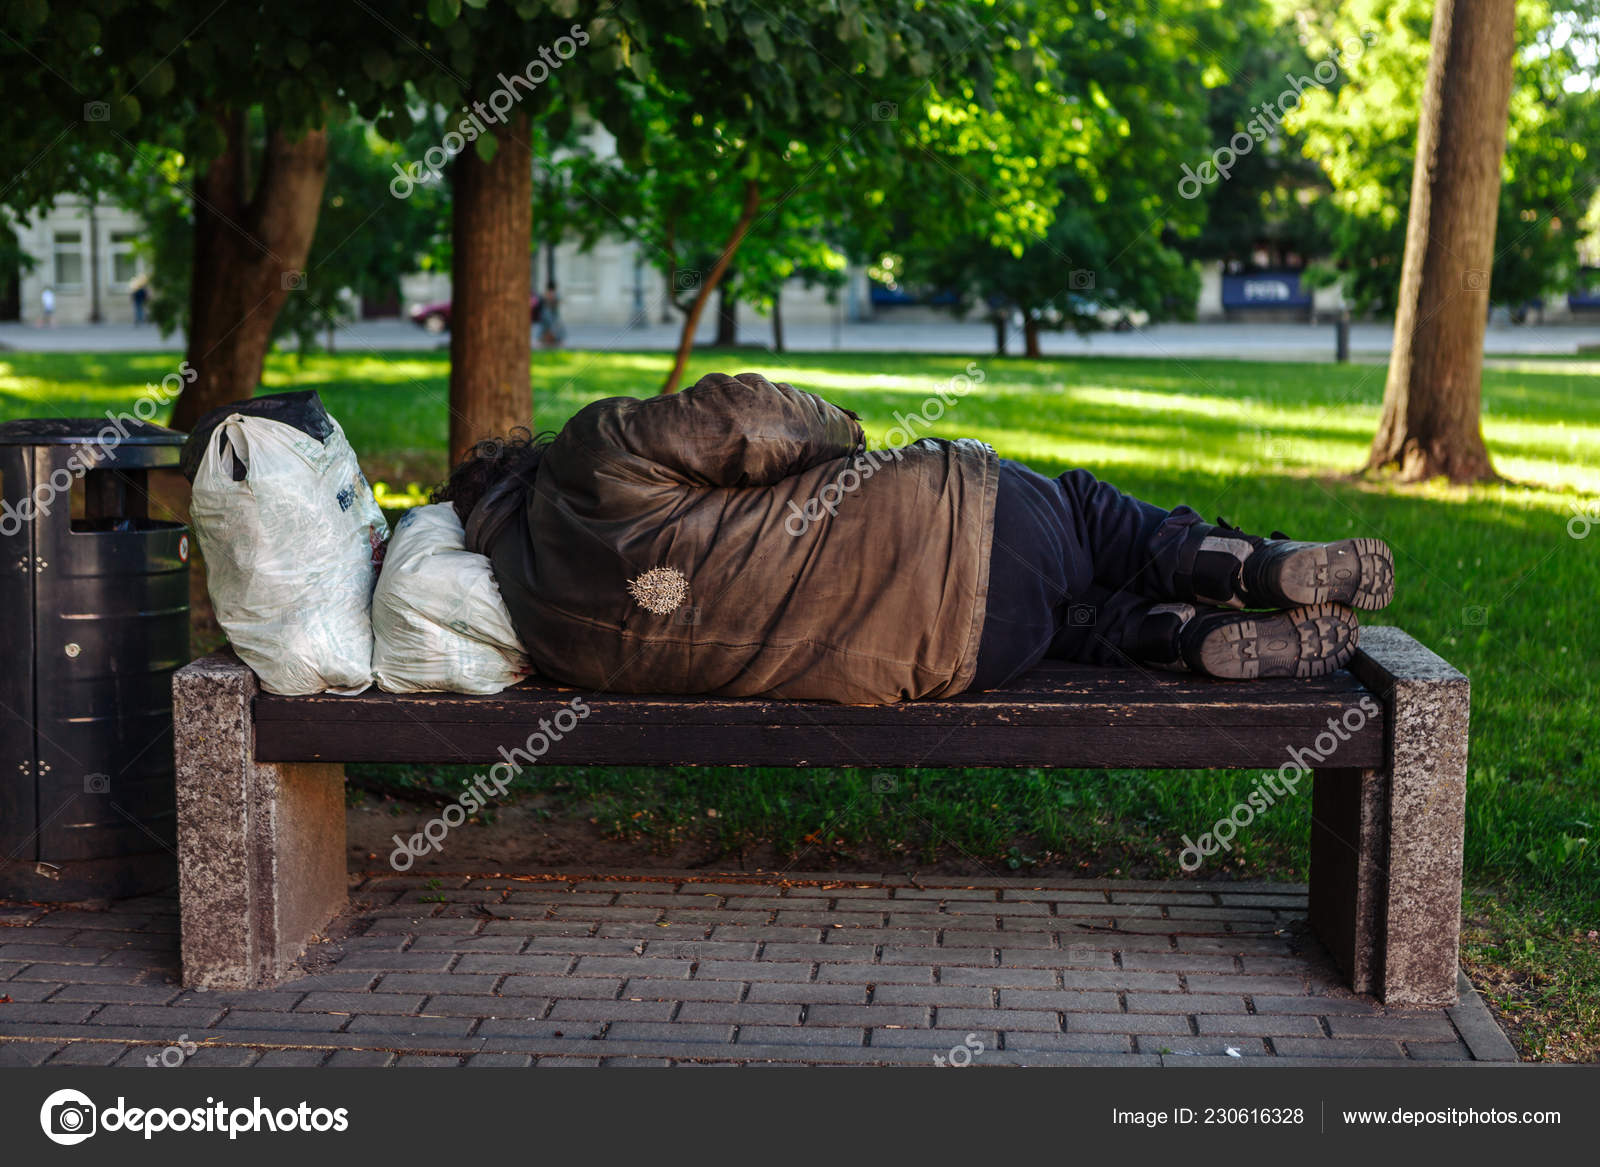 Homeless Sleeping On A Park Bench Lithuania Stock Editorial Photo